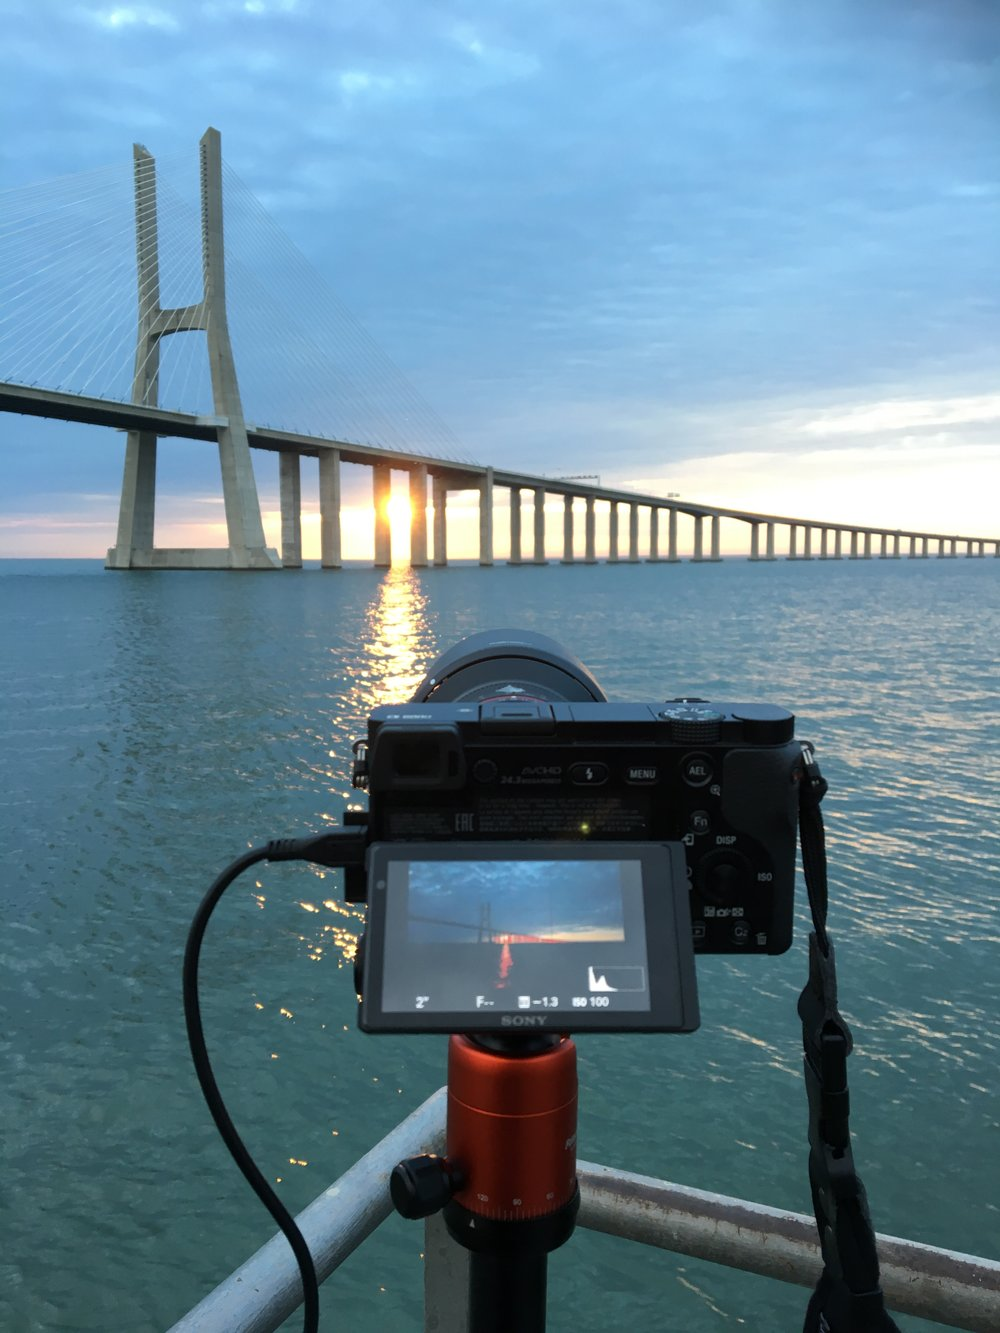 the first images in my gallery have been shot with the a6000 (Vasco ca Gama bridge, Lisbon, Portugal)